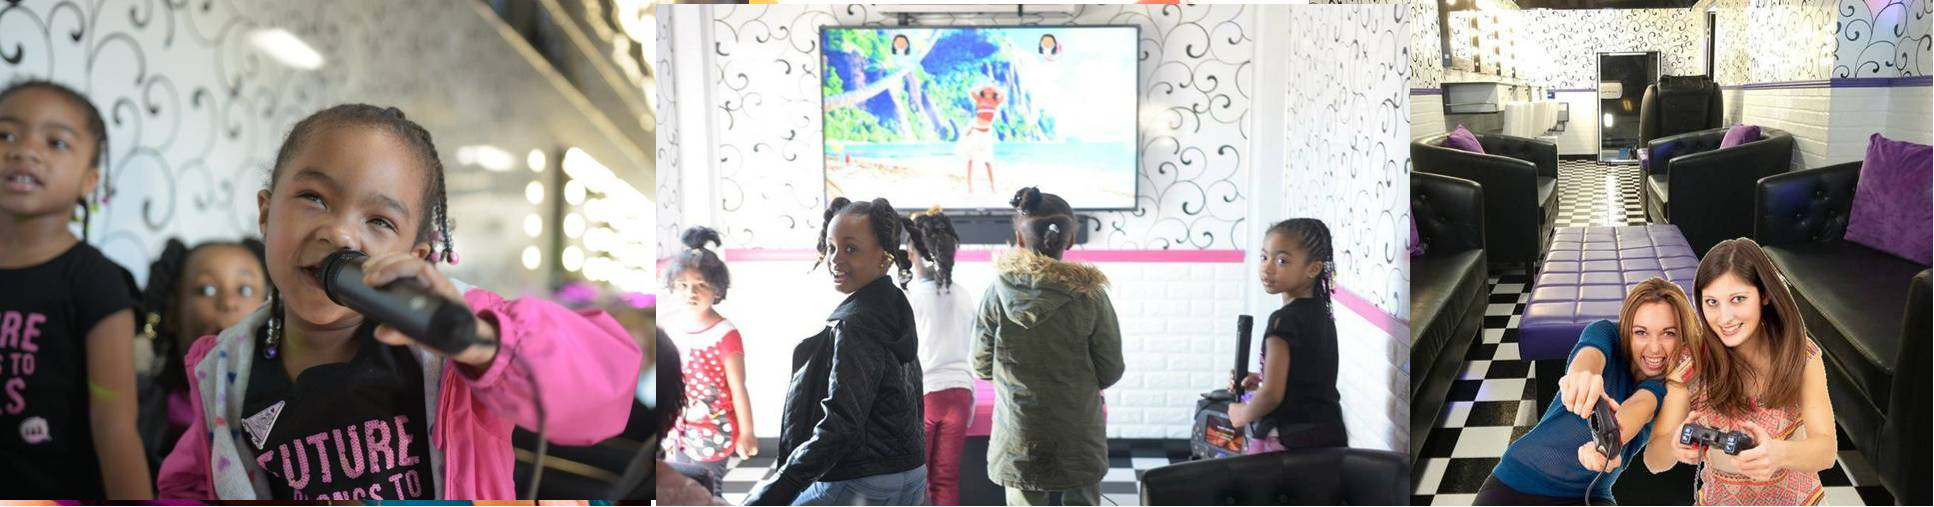 Girls video game karaoke birthday party in Newburgh, Port Jervis and Middletown, NY